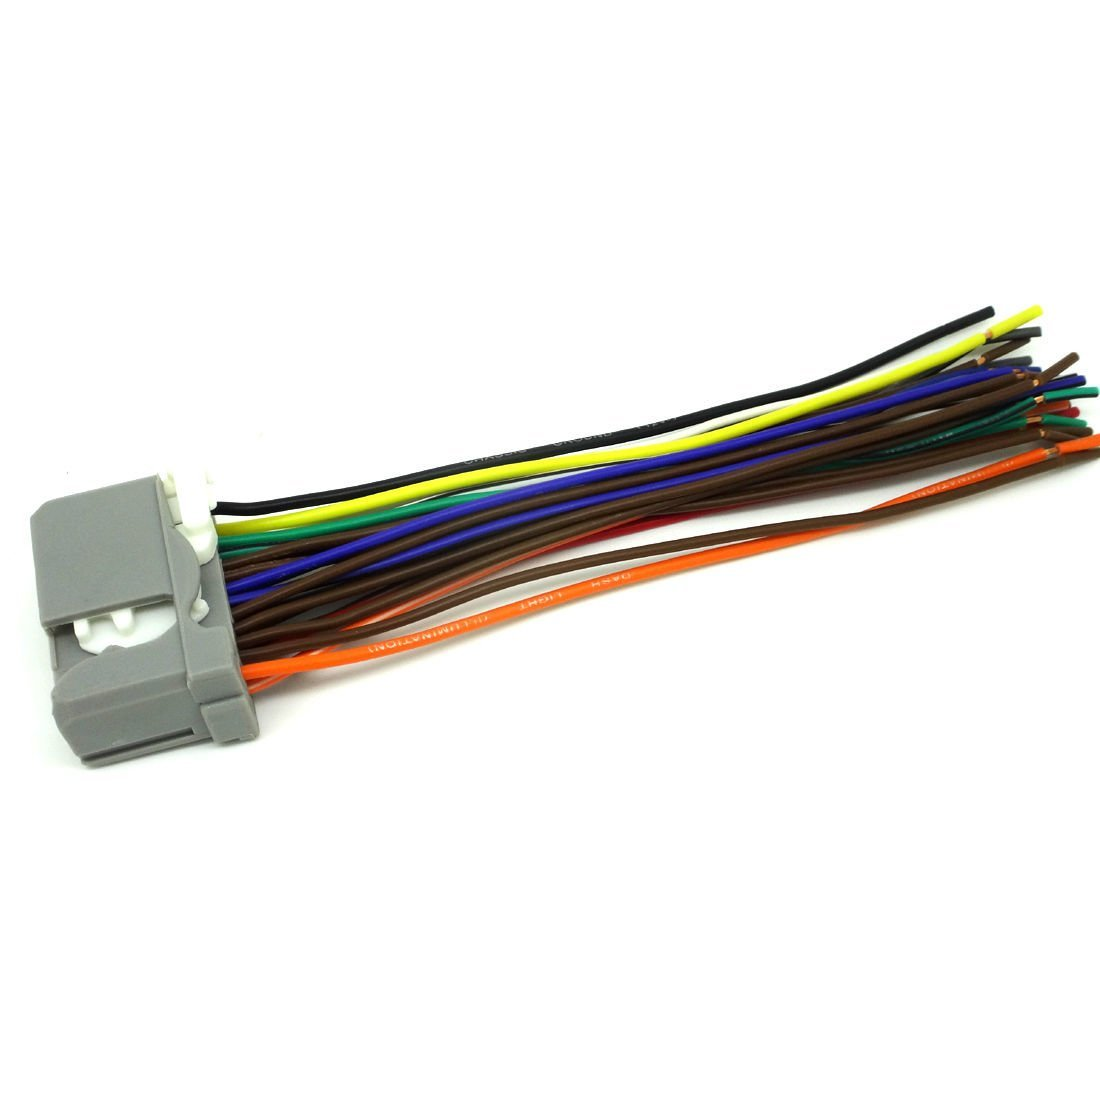 hight resolution of honda car stereo cd player wiring harness wire aftermarket radio install 2009 2012 honda ridgeline